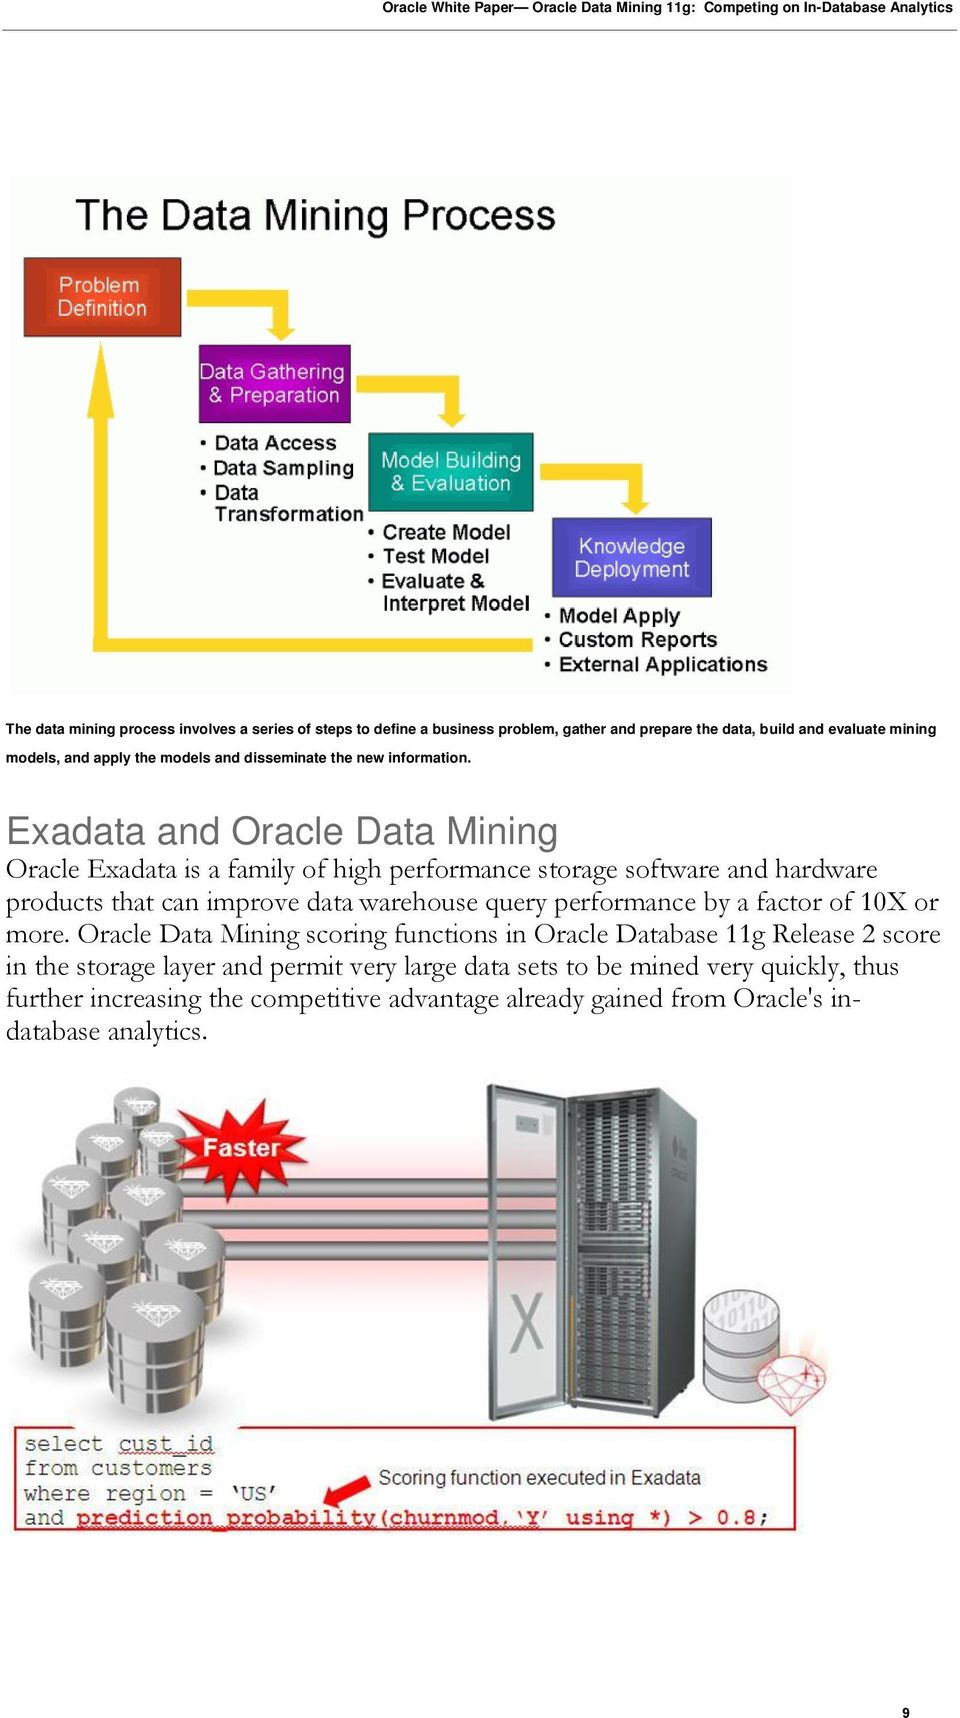 Exadata and Oracle Data Mining Oracle Exadata is a family of high performance storage software and hardware products that can improve data warehouse query